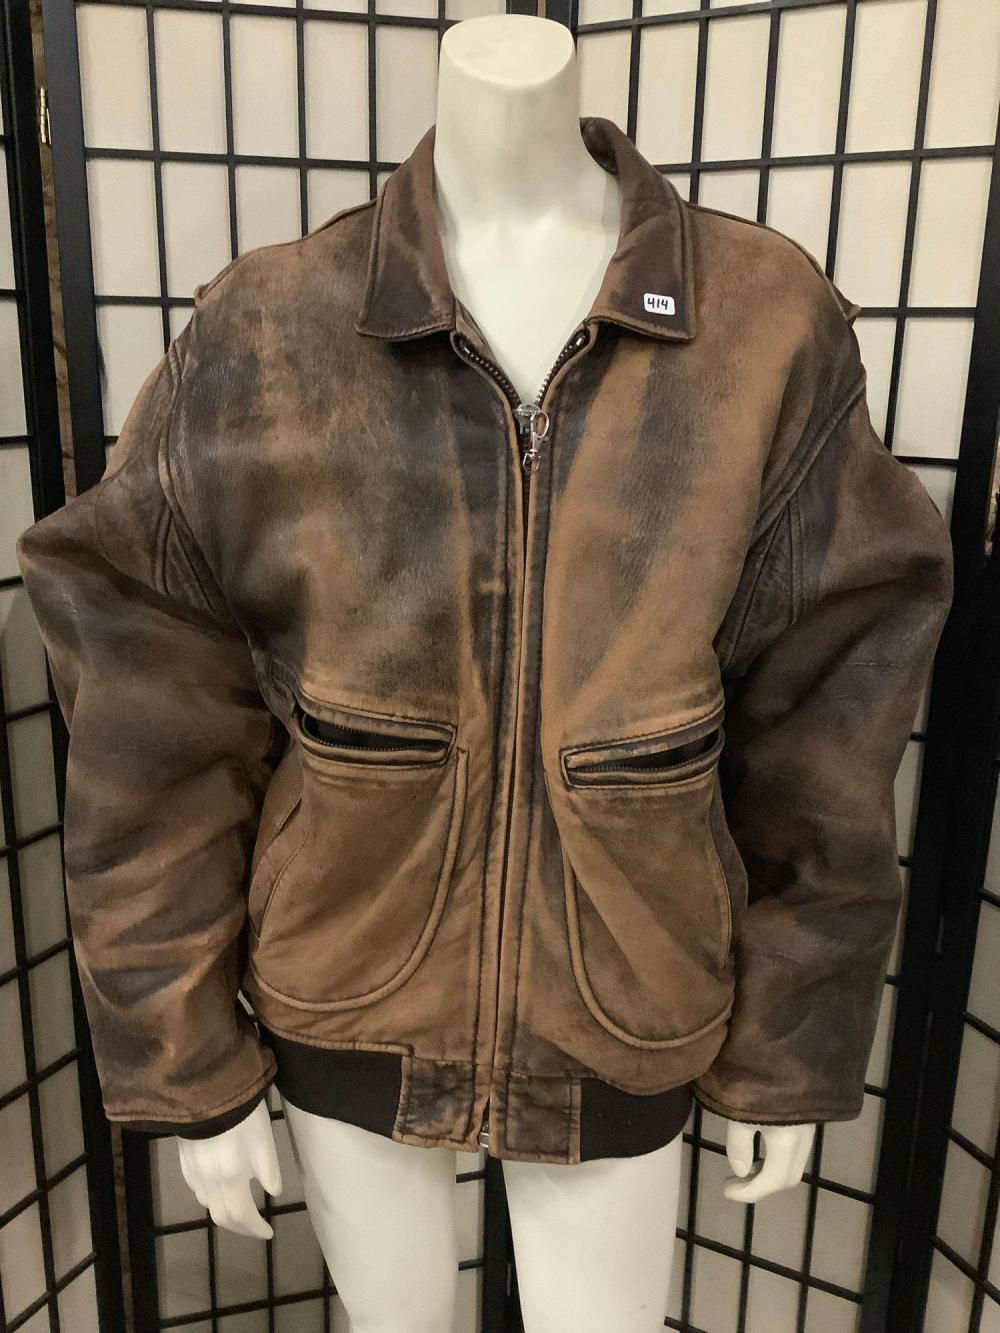 Vintage 1987 Avirex USA Leather bomber jacket type G-2 with back and shoulder patch